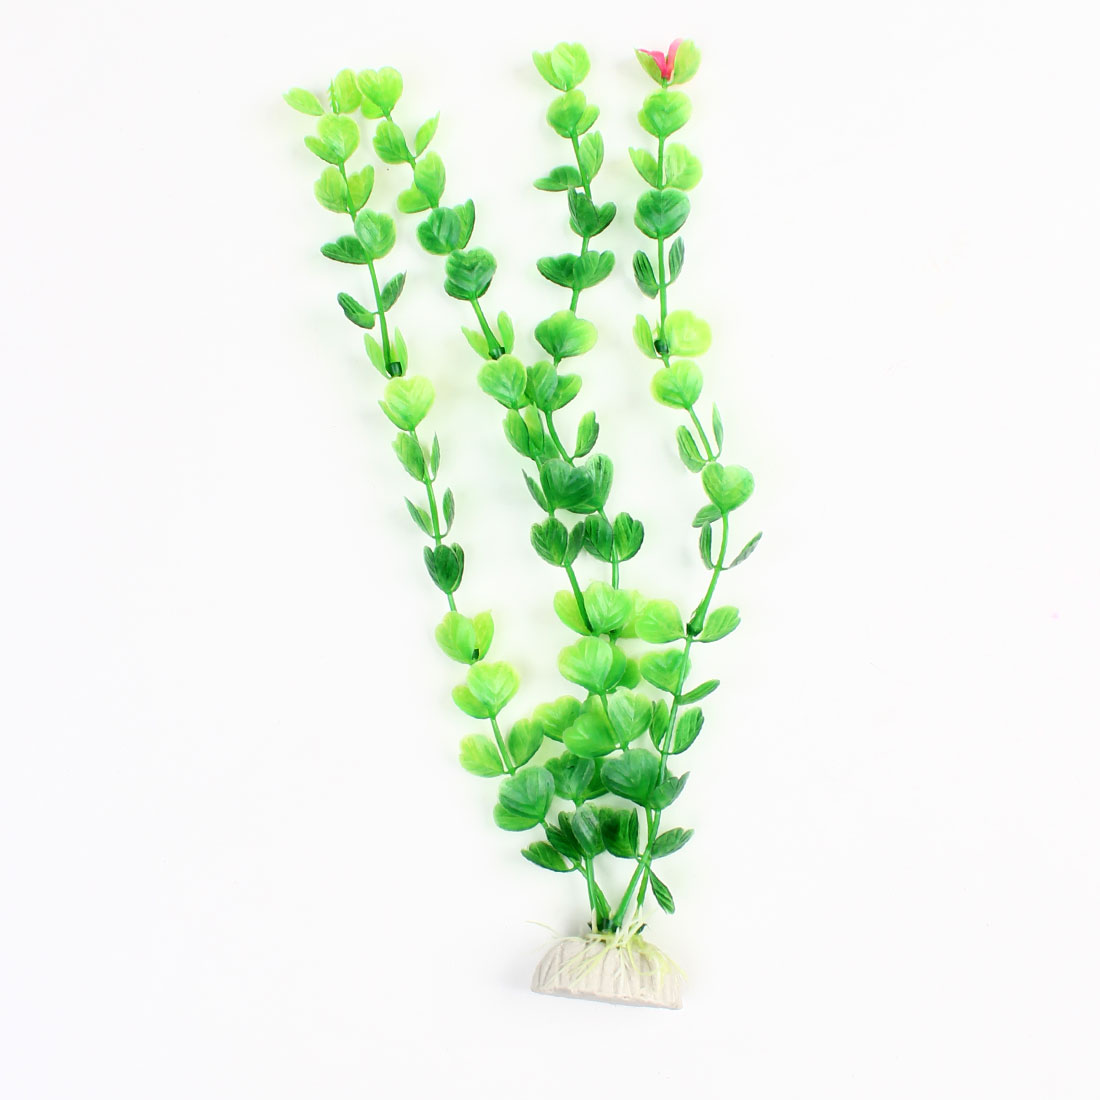 Fish Tank Green Emulational Plastic Aquatic Grass Plant 11.8""